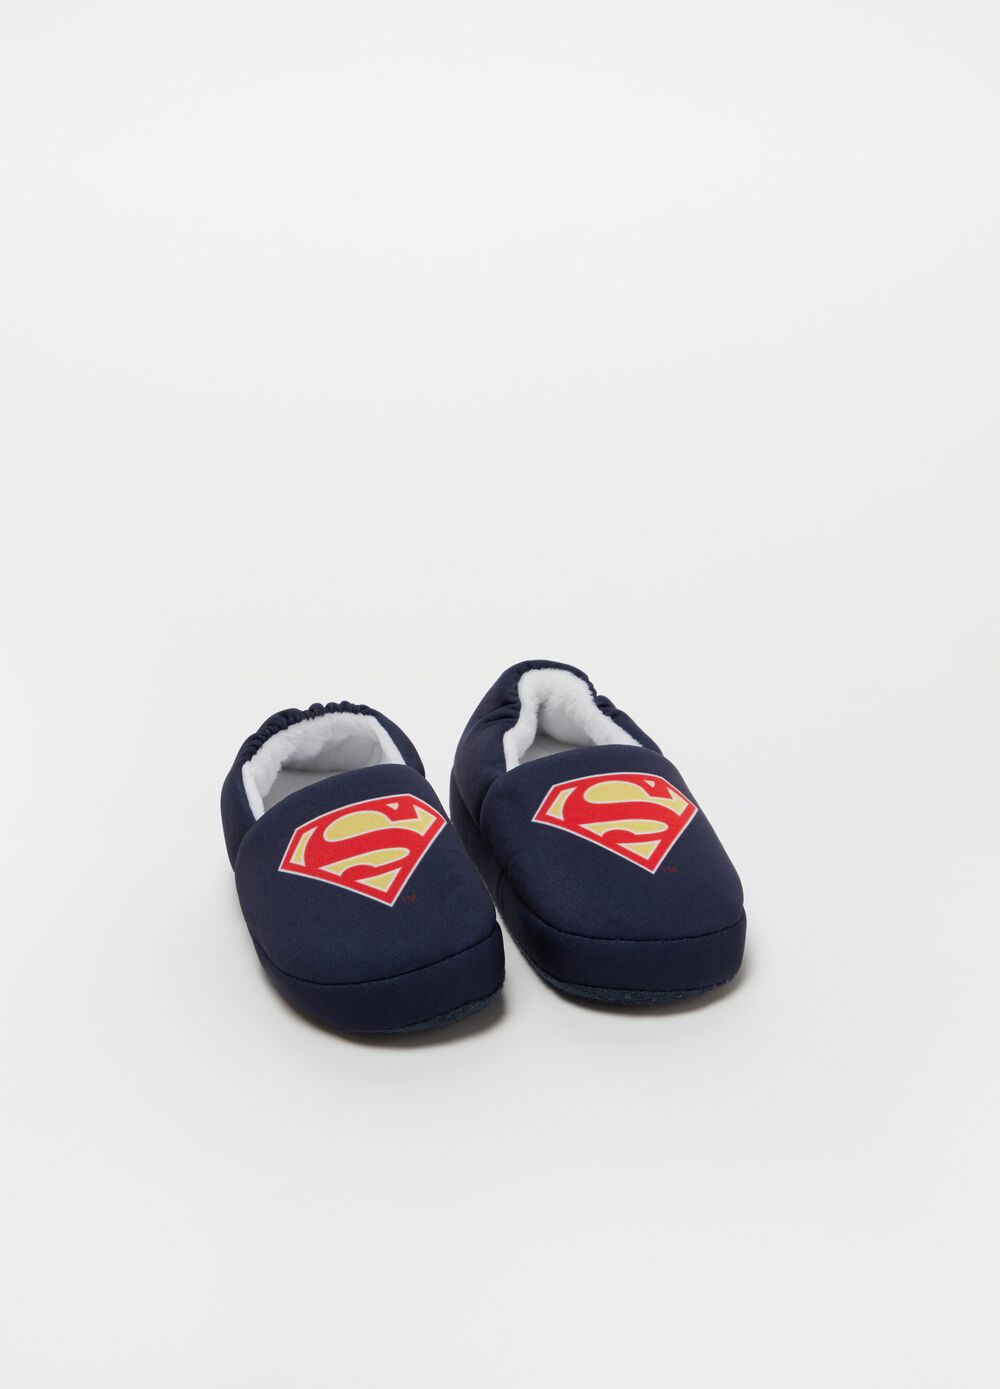 Slippers with Superman print